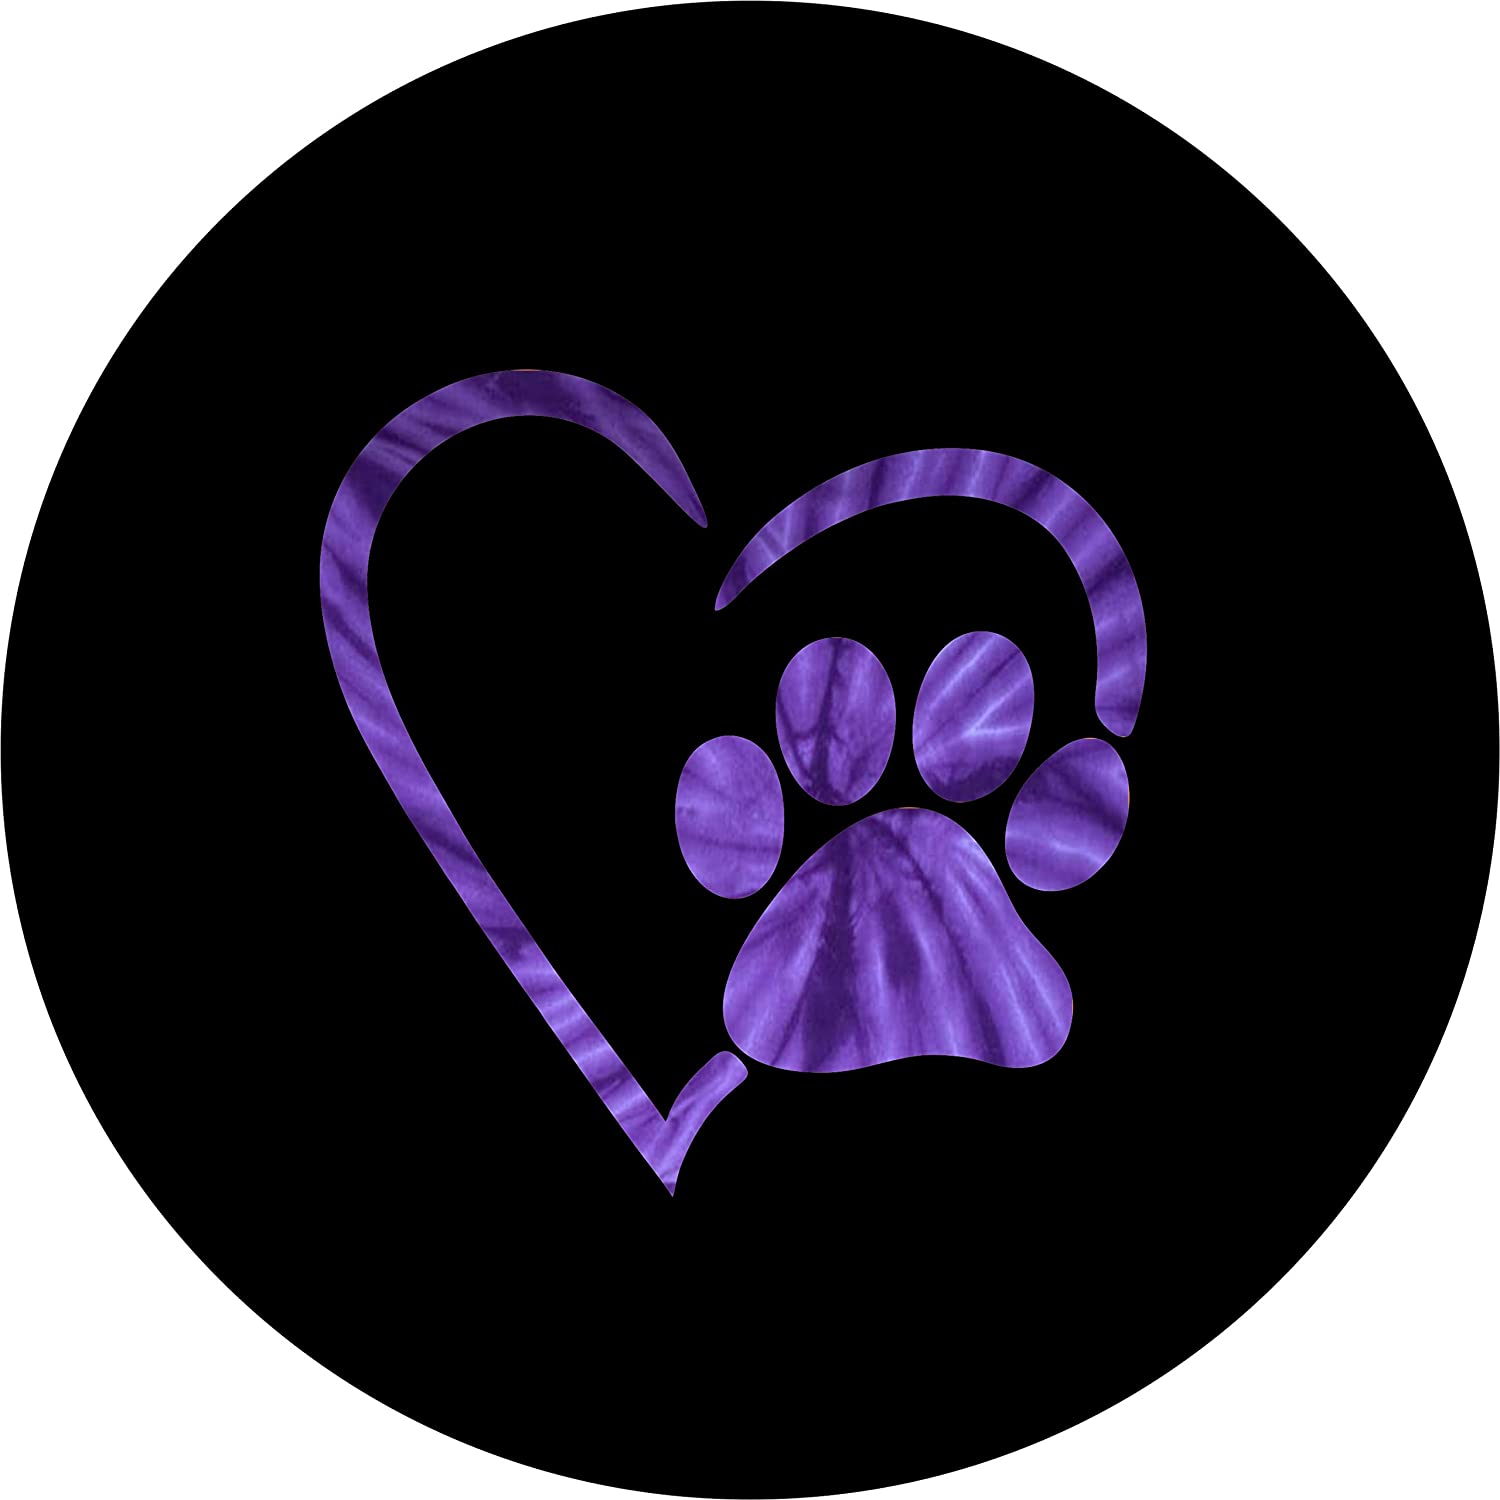 TIRE COVER CENTRAL Paws Love Max 58% OFF Purple Tie Cov Heart OFFicial mail order Dye Tire Spare